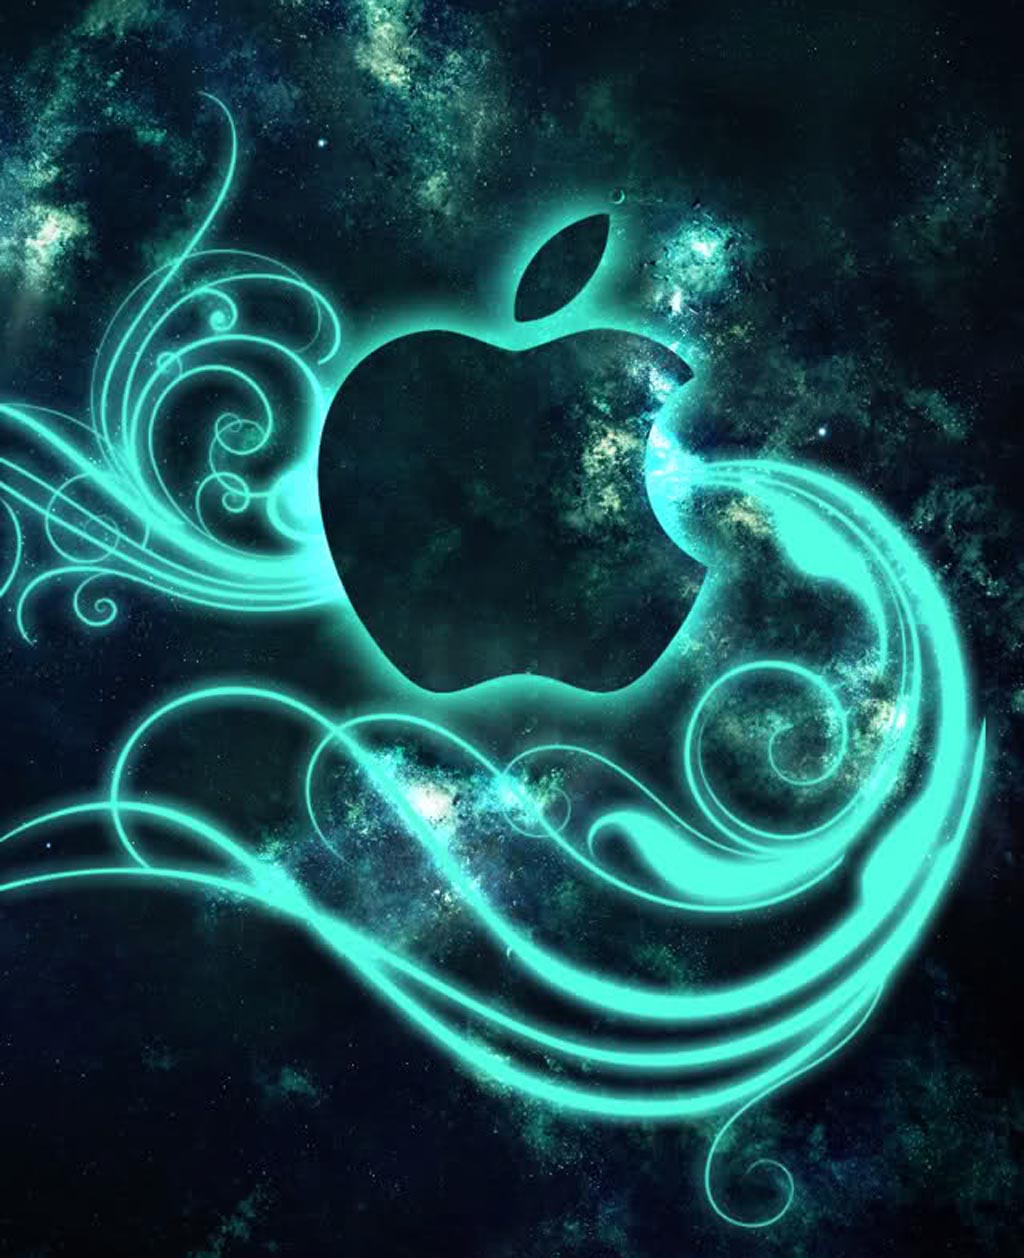 50 Cool Wallpaper Images For Iphone On Wallpapersafari